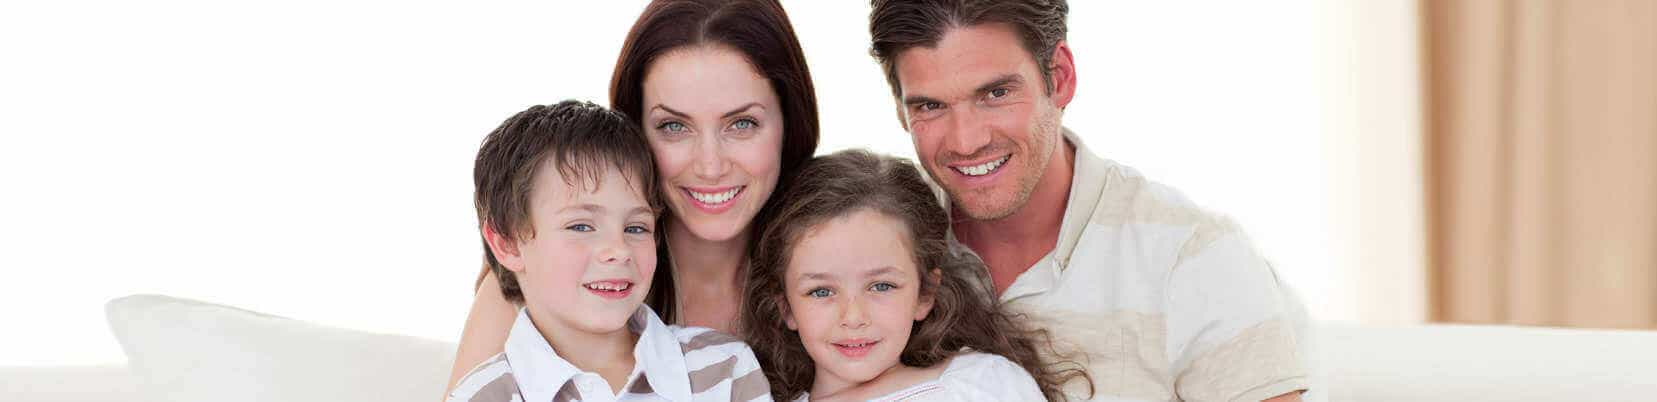 Paris Family Dental - Pediatric Dentistry